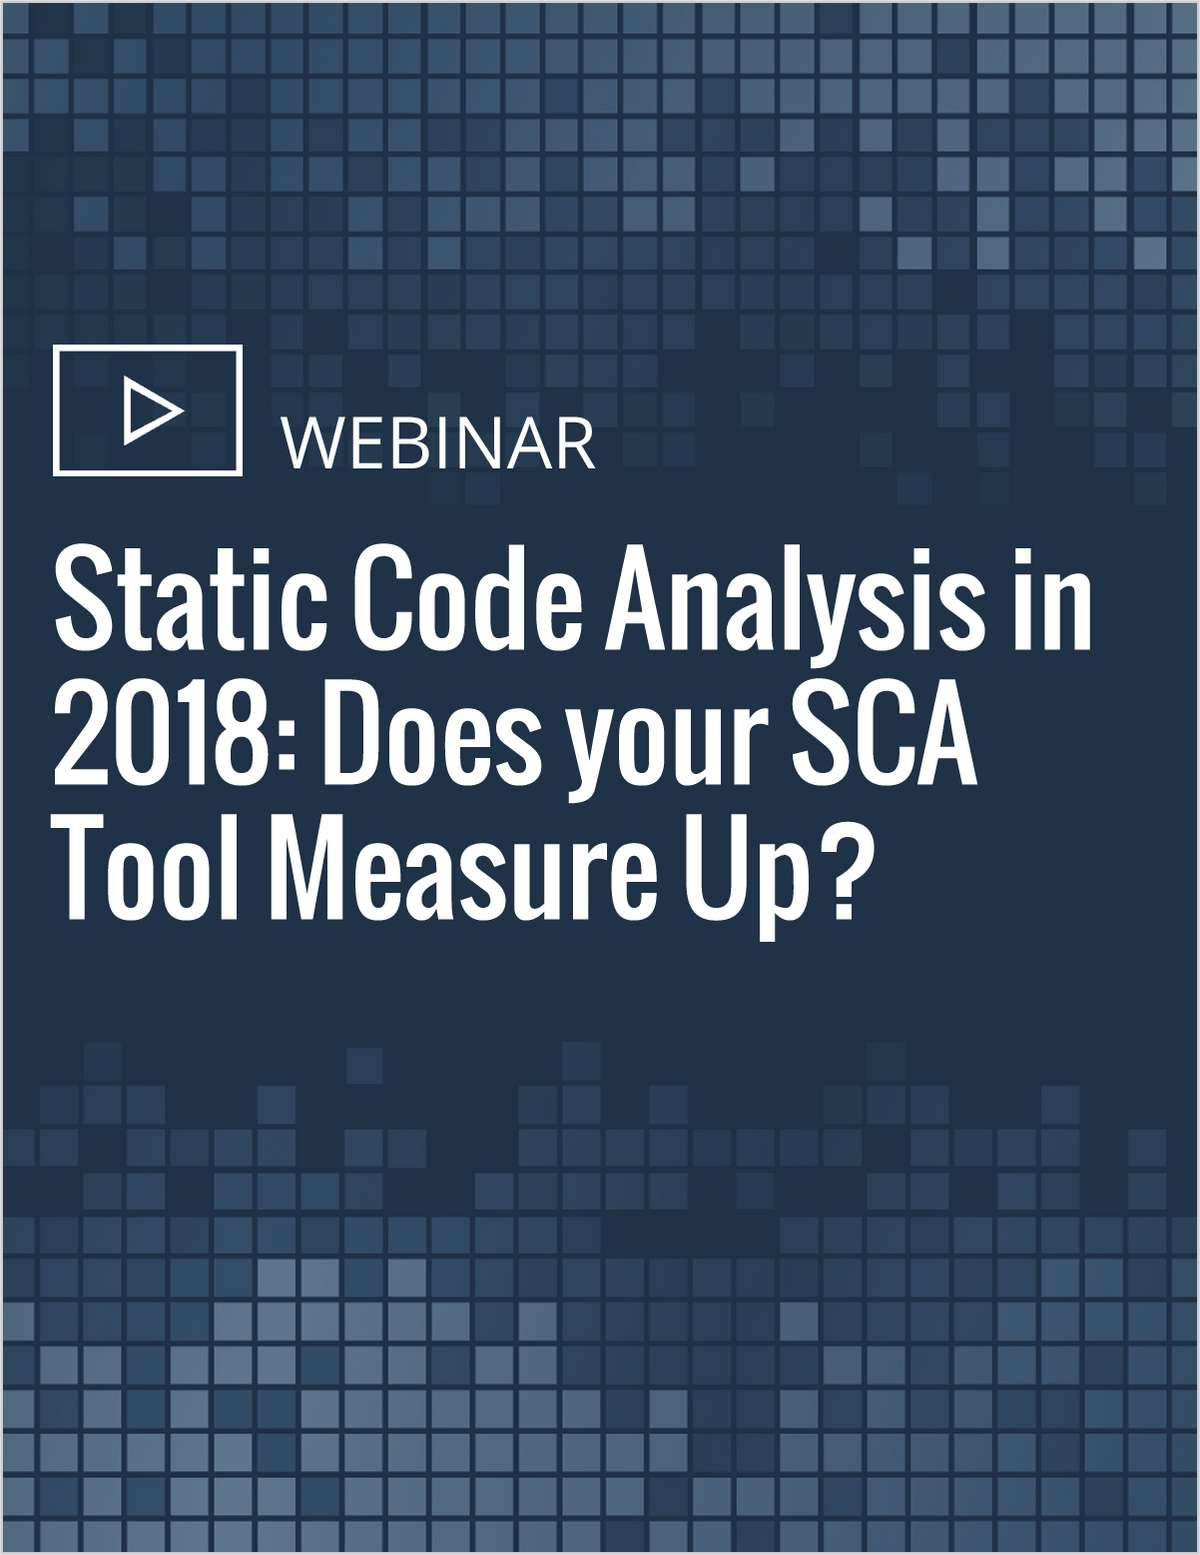 Static Code Analysis in 2018: Does your SCA Tool Measure Up?